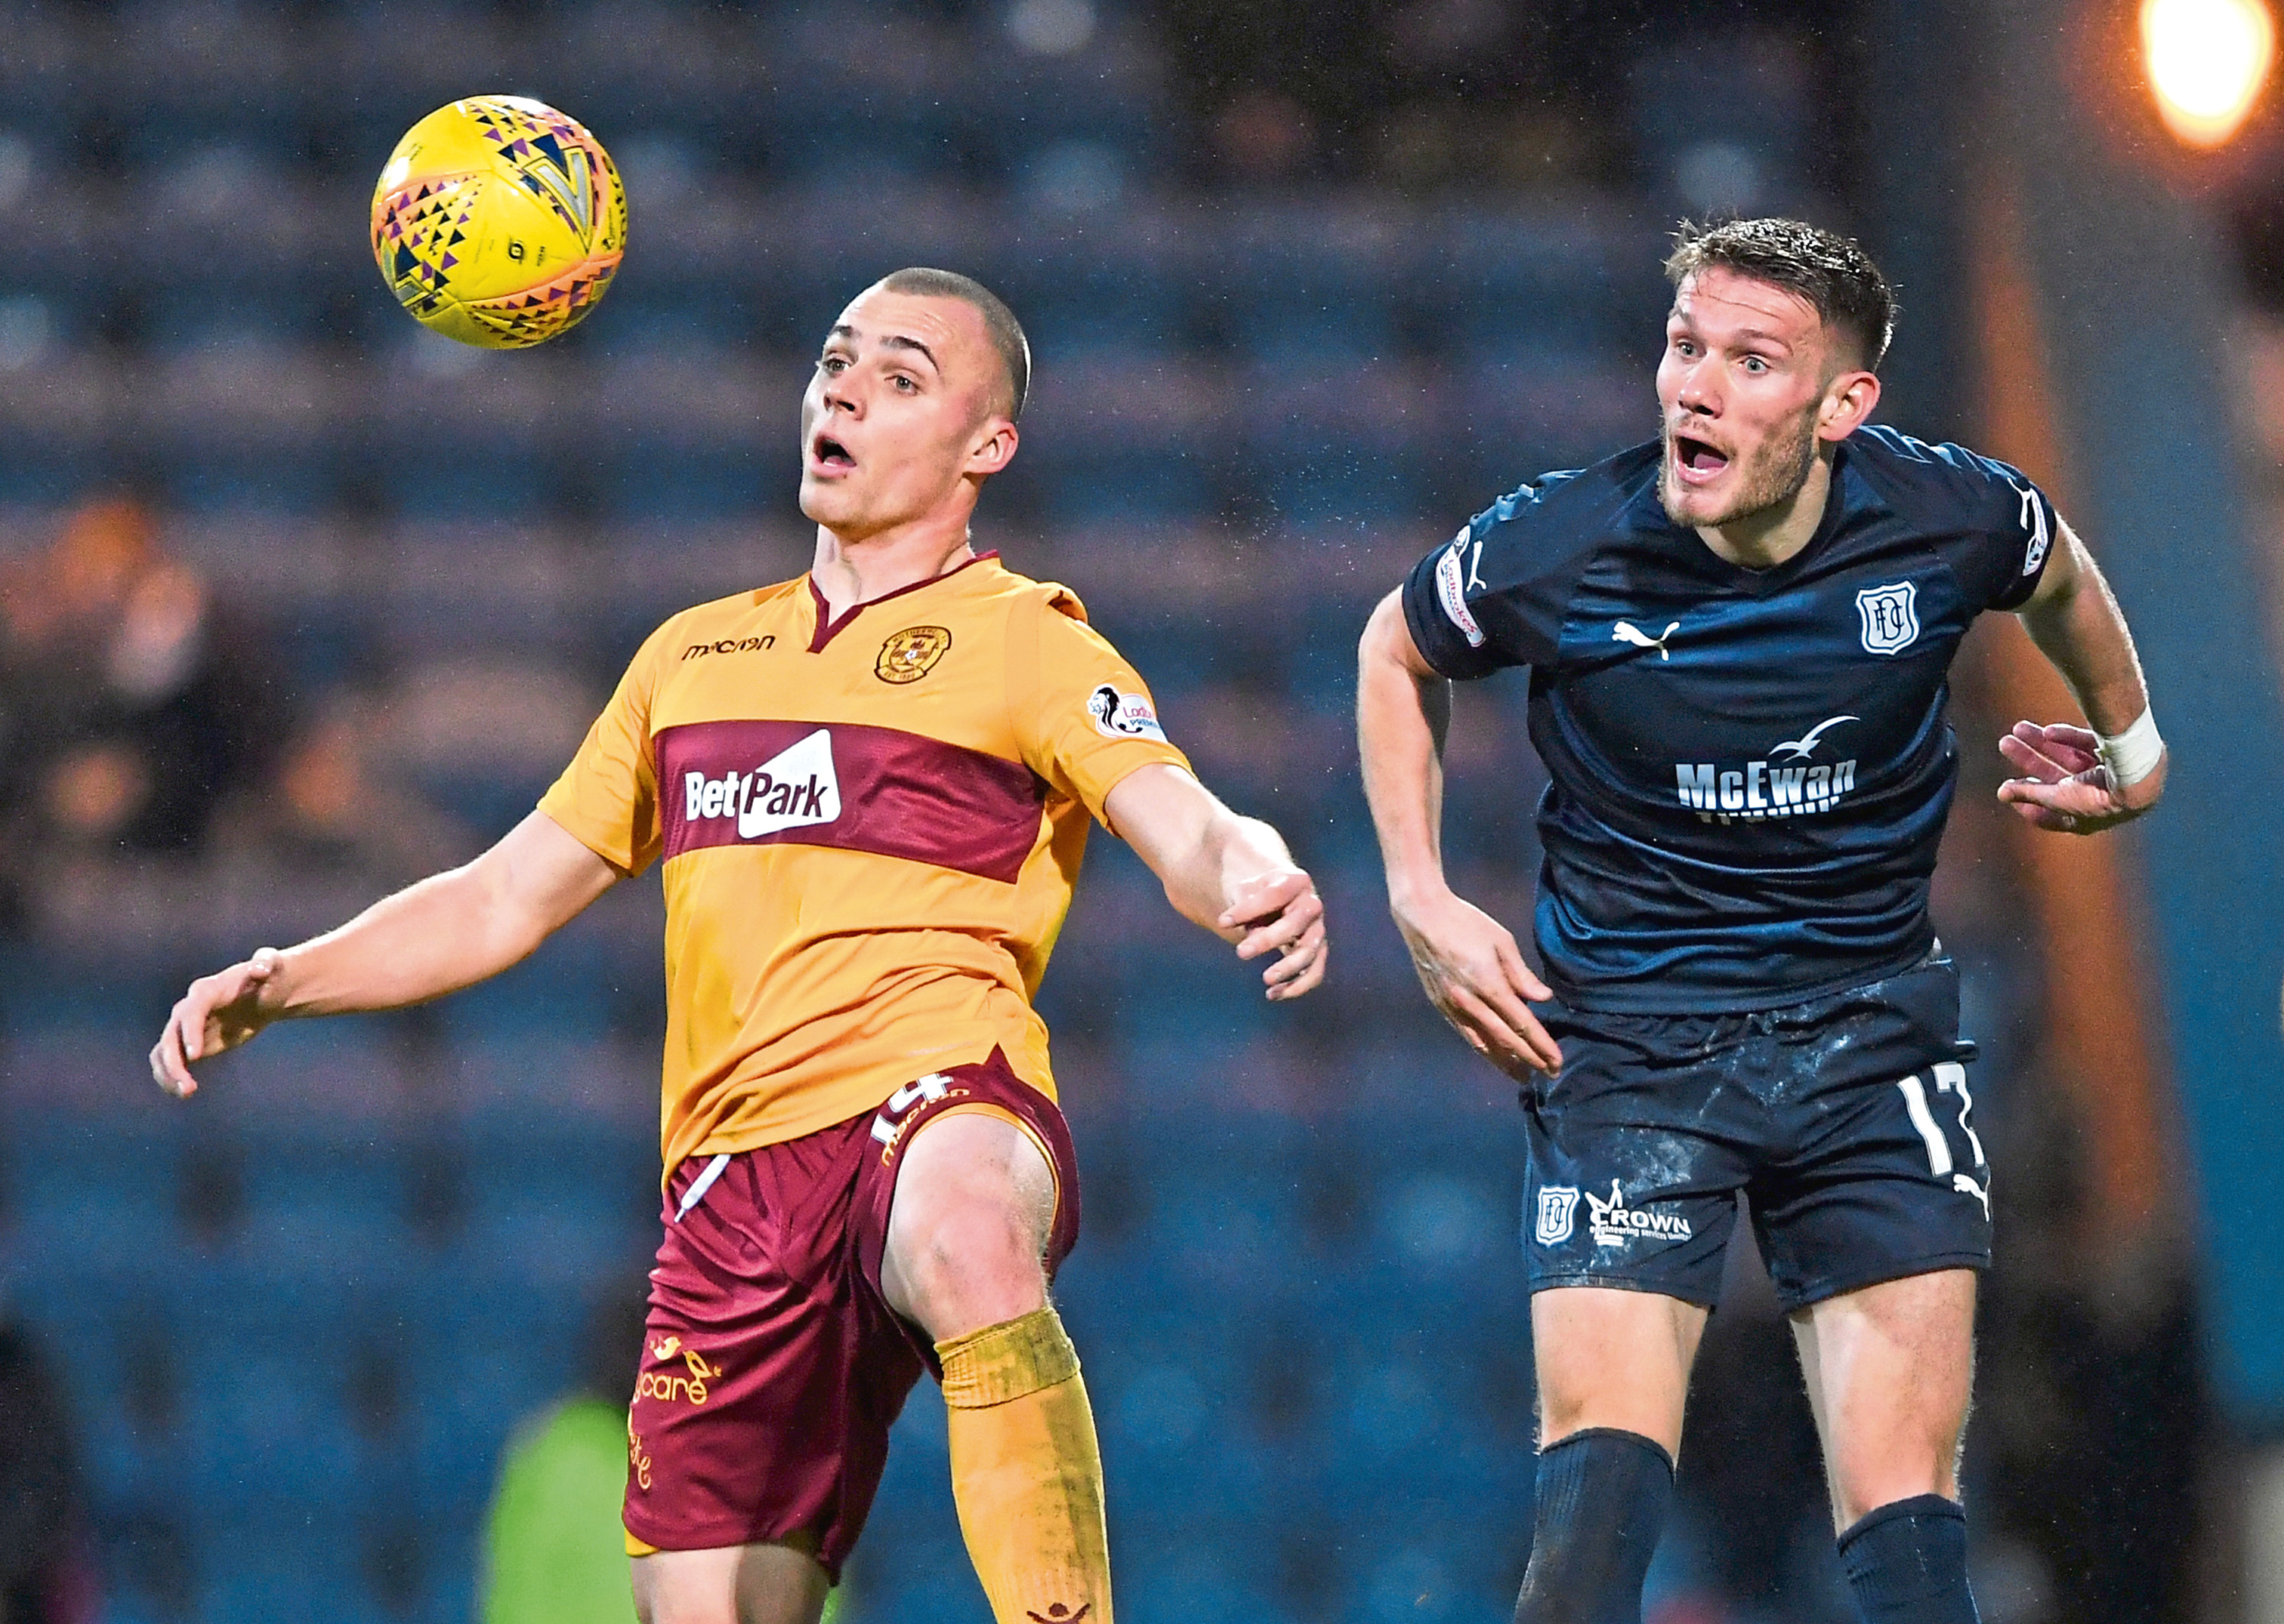 Dundee face Motherwell this weekend bidding to bring an end to their run of eight-straight defeats in the Premiership.